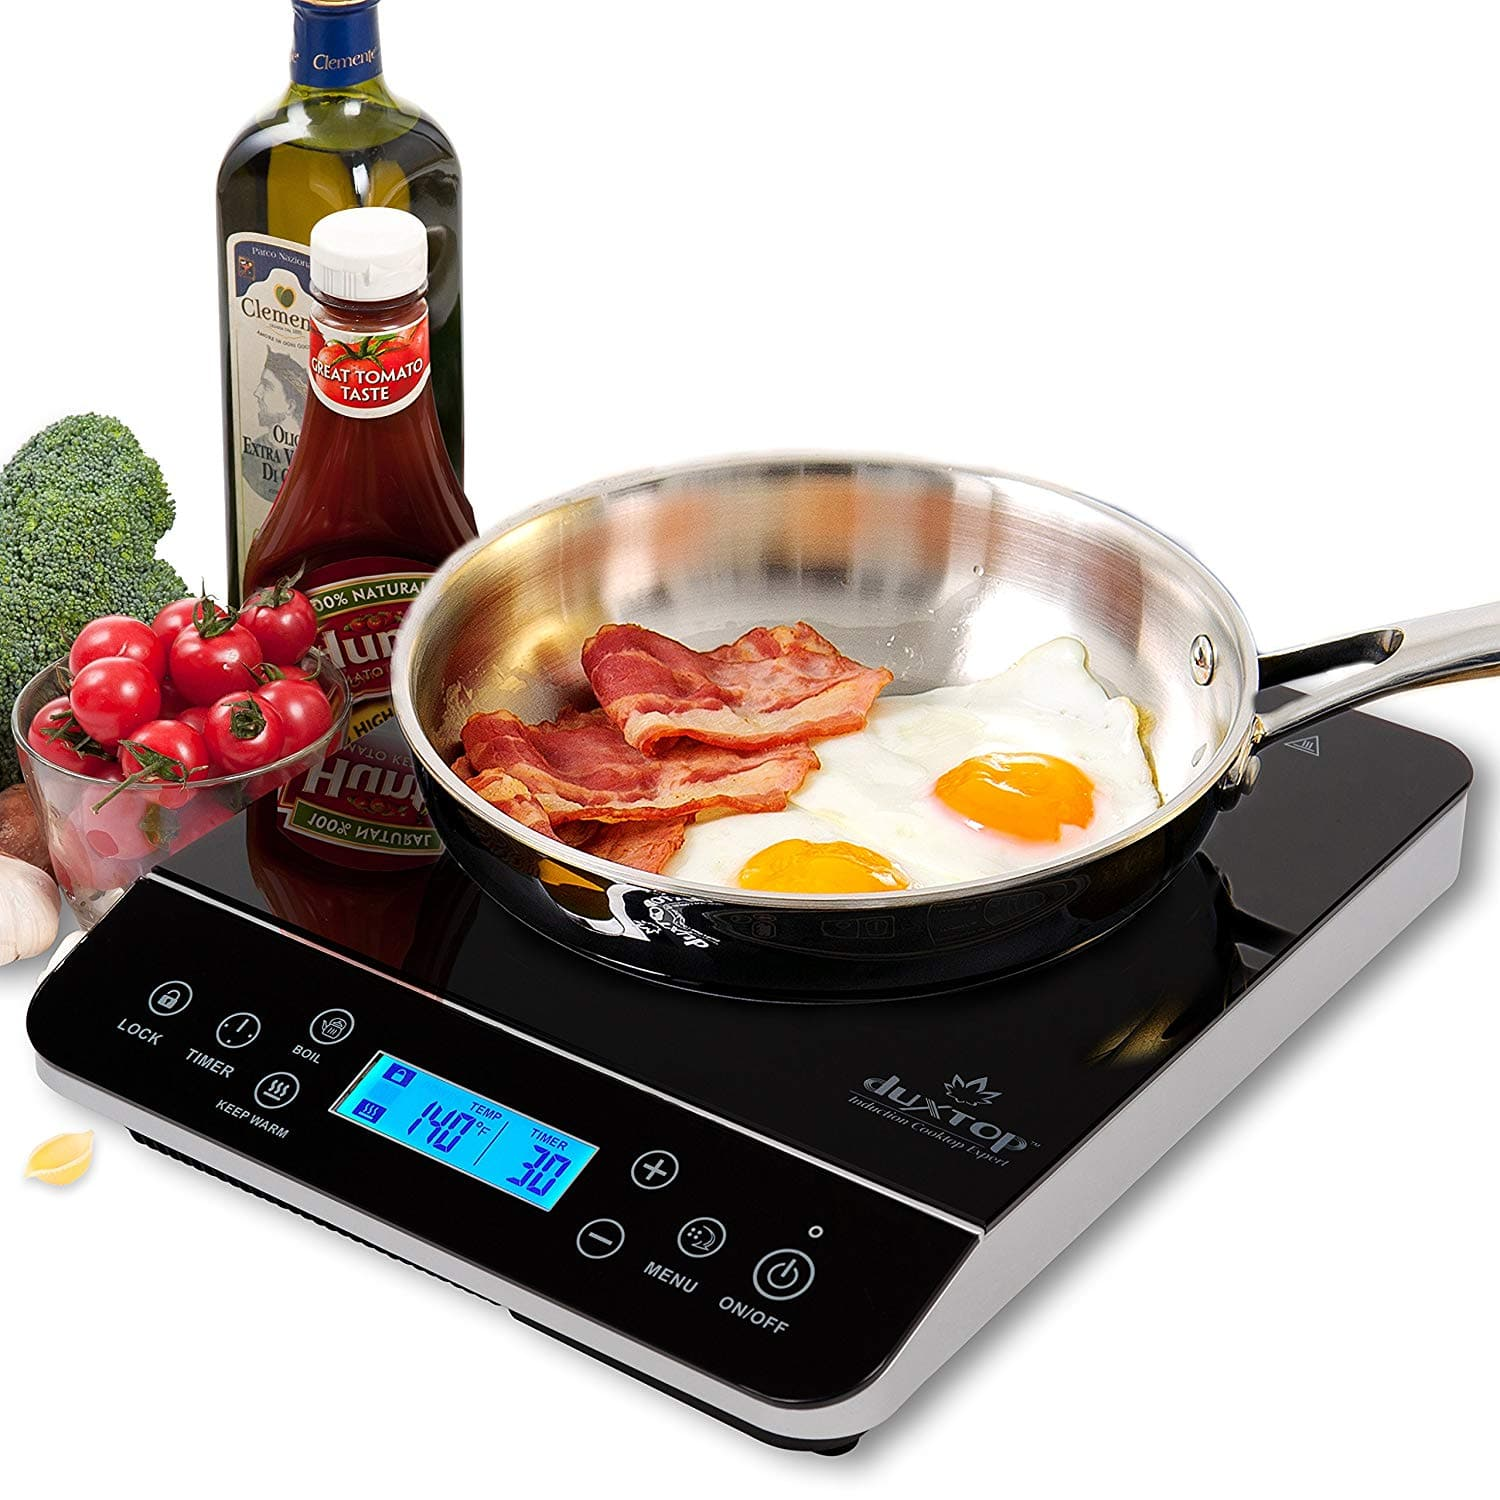 Duxtop LCD 1800-Watt Portable Induction Cooktop Countertop Burner 9600LS $74.99